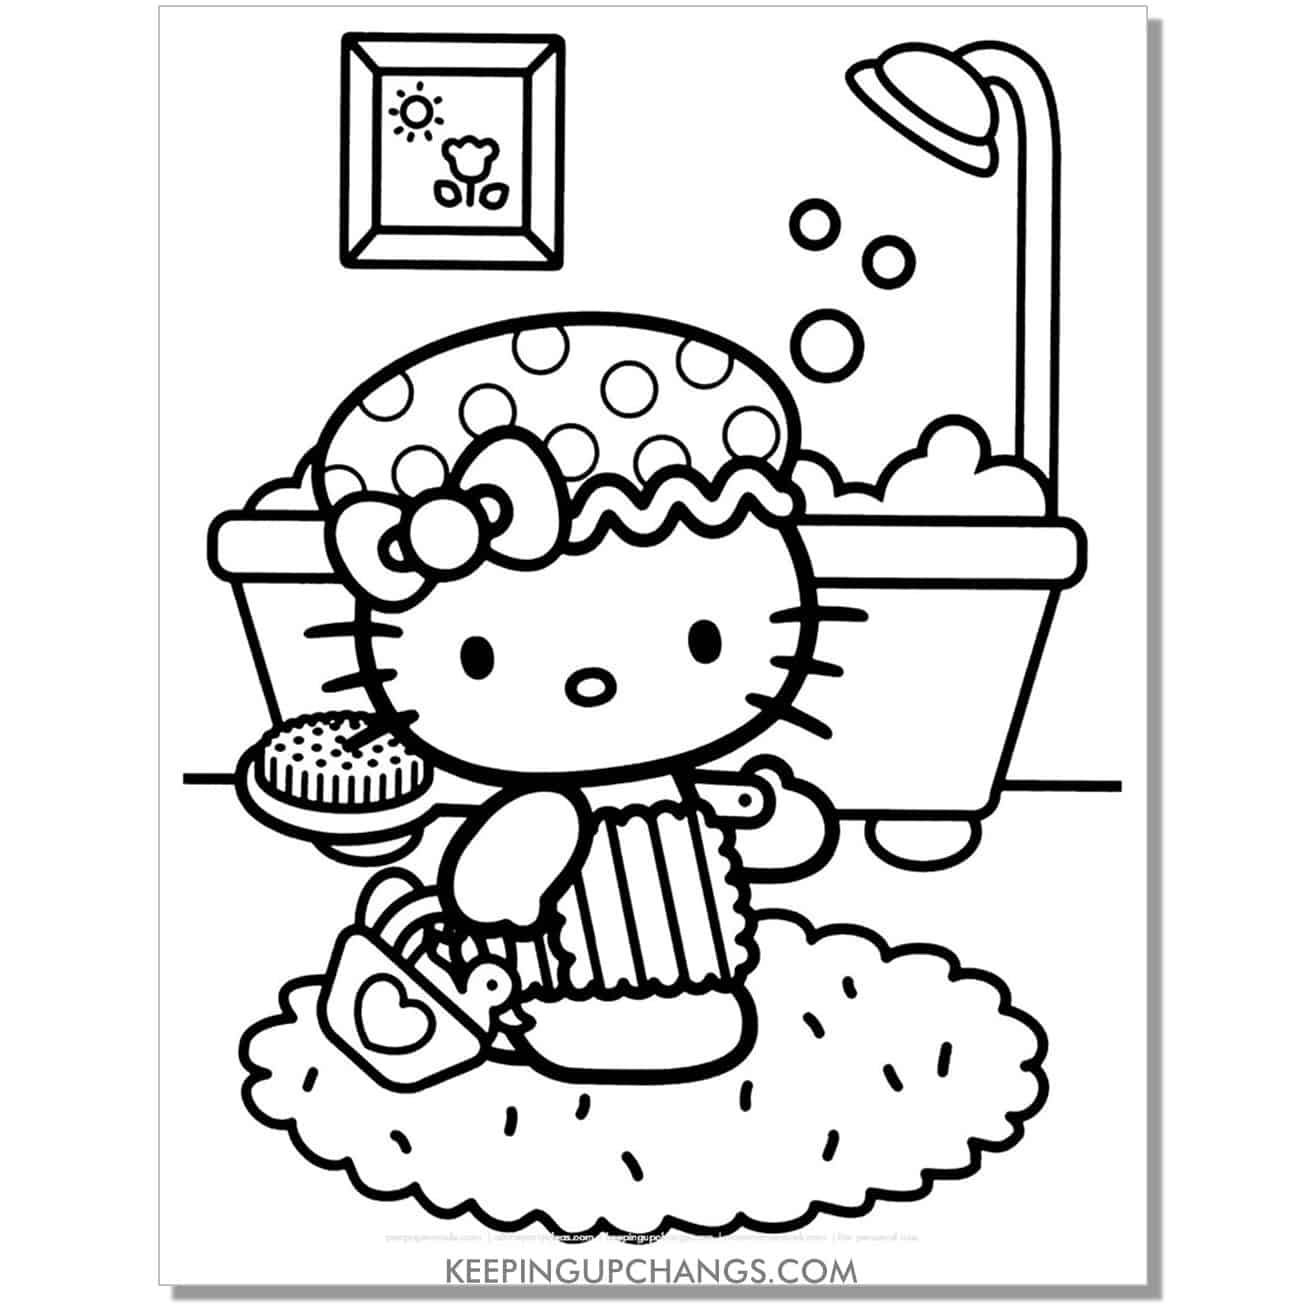 clean up bath time hello kitty coloring page.